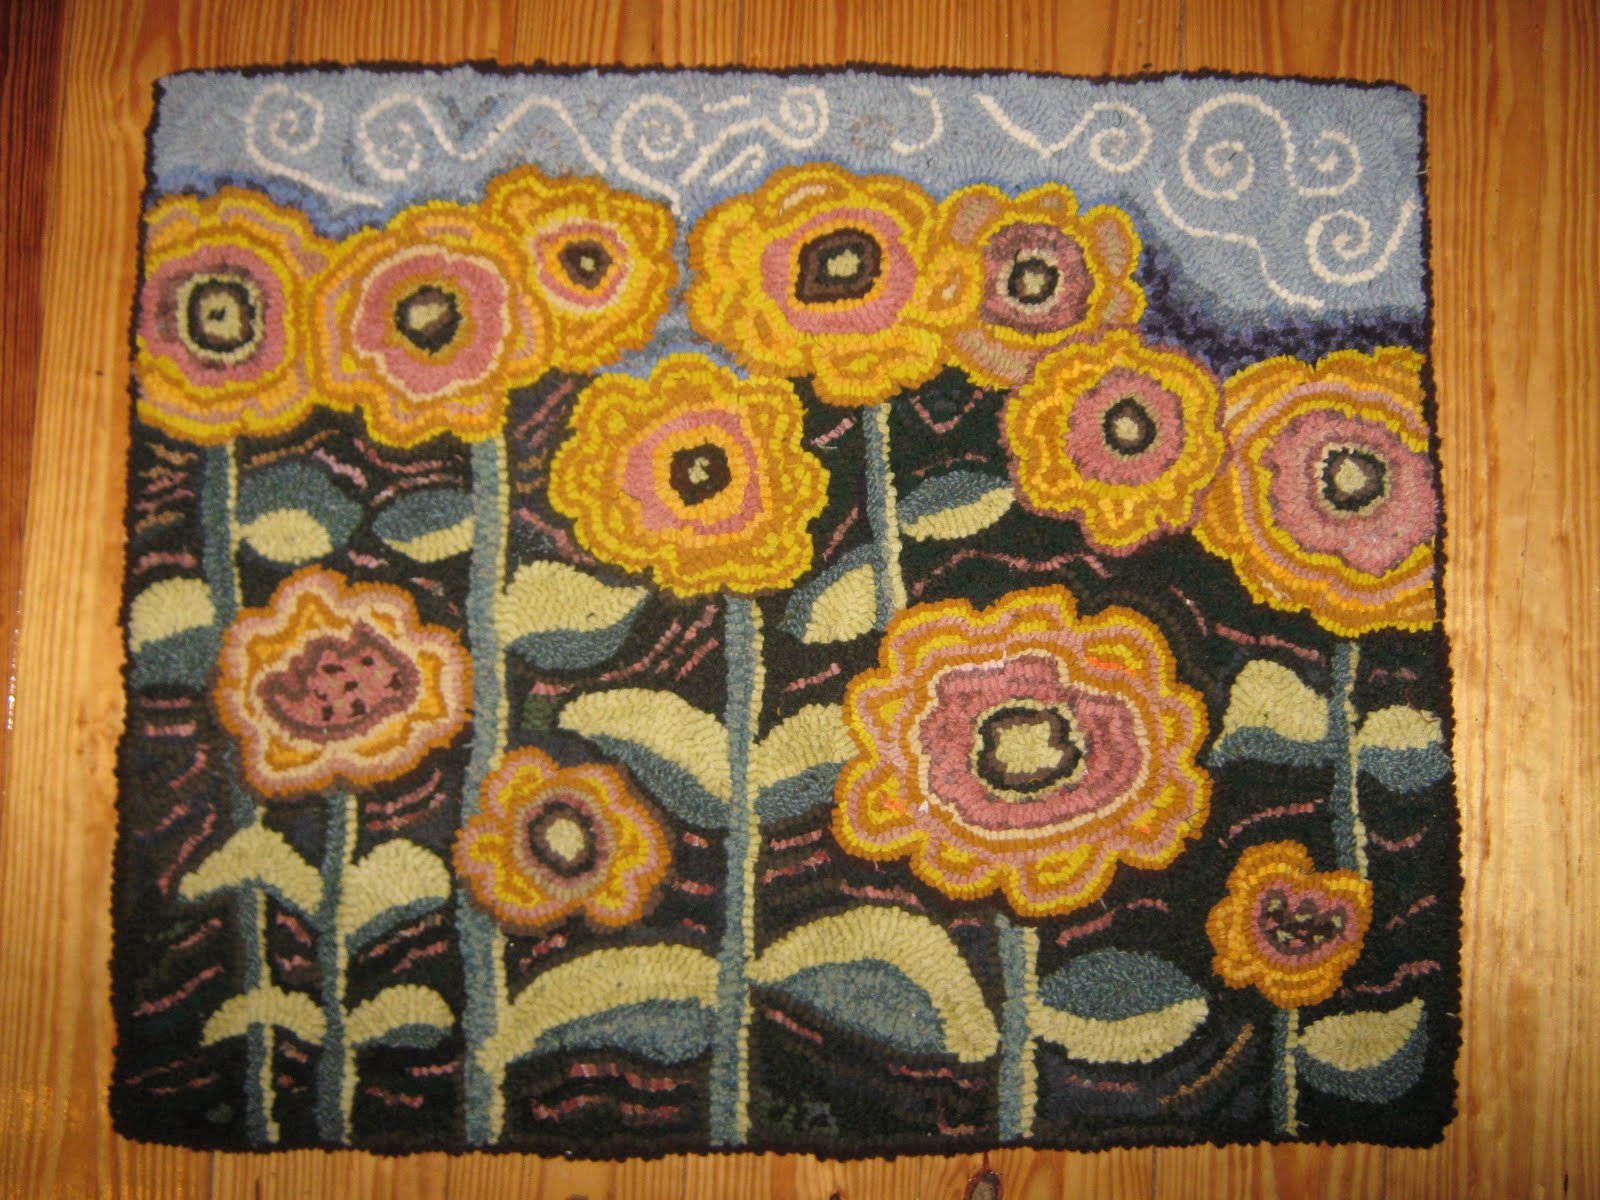 Vintage Spice and Everything Nice: Completed sunflower rug